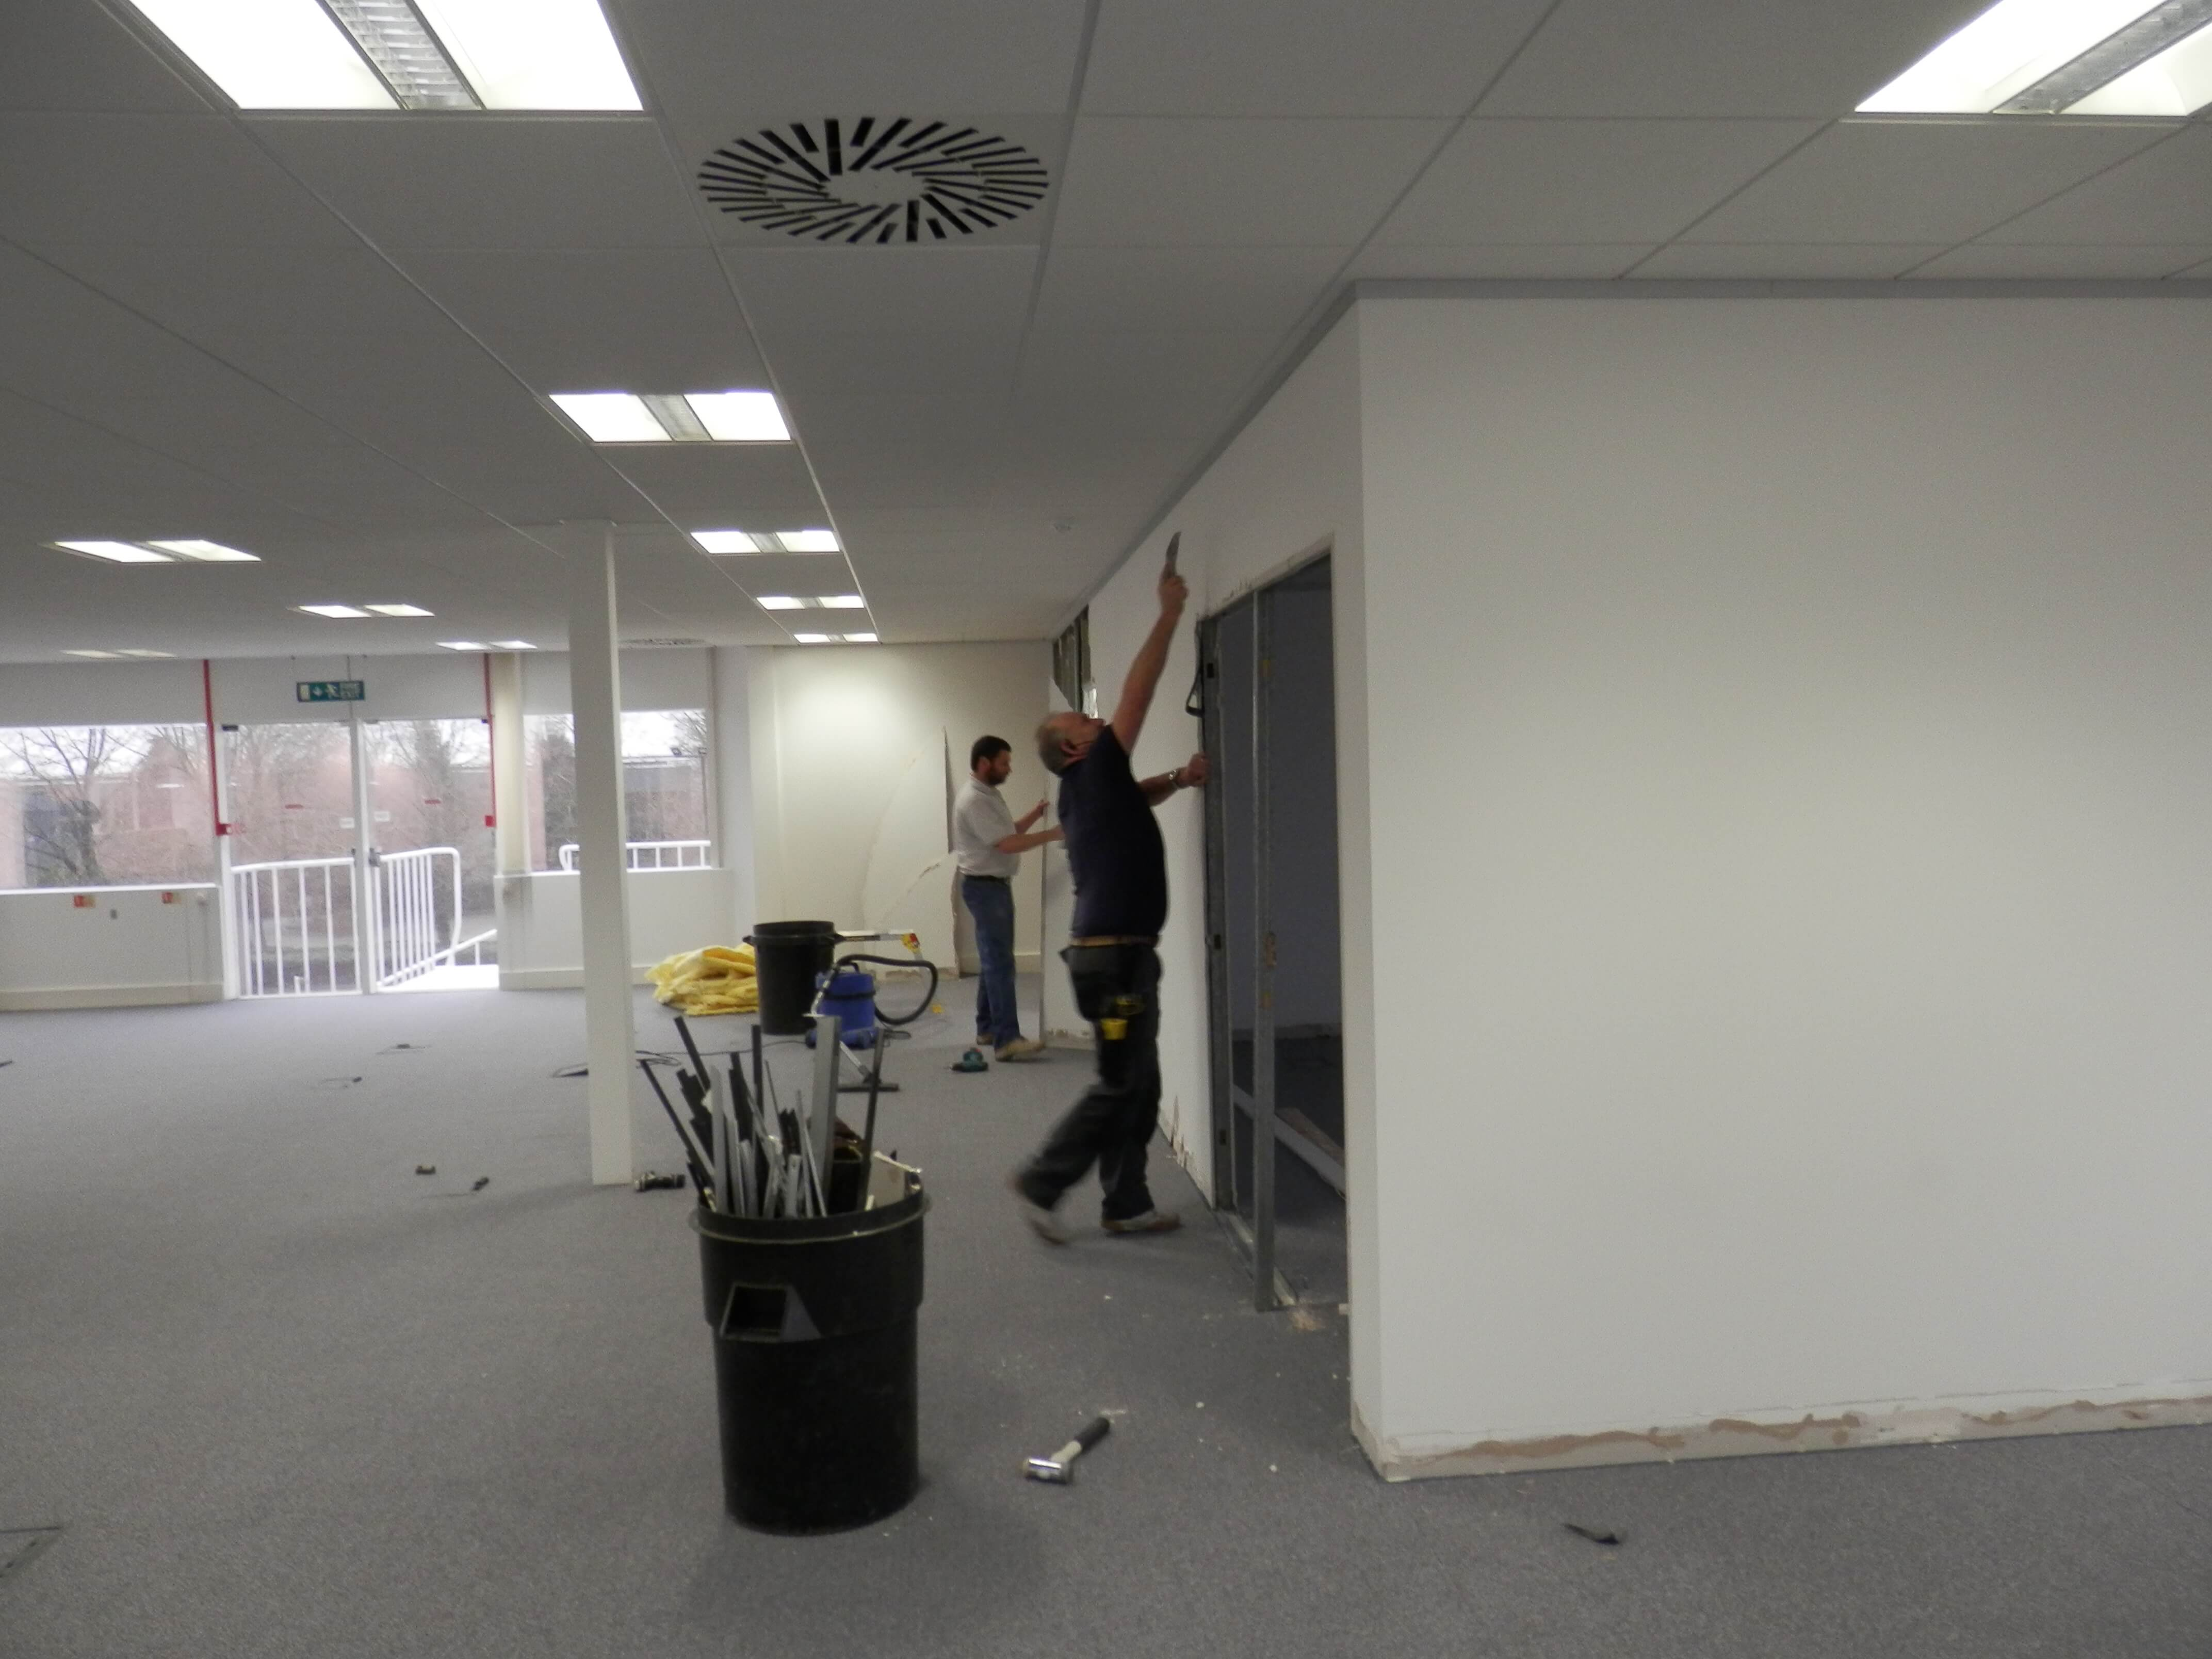 Stripping existing partitions out